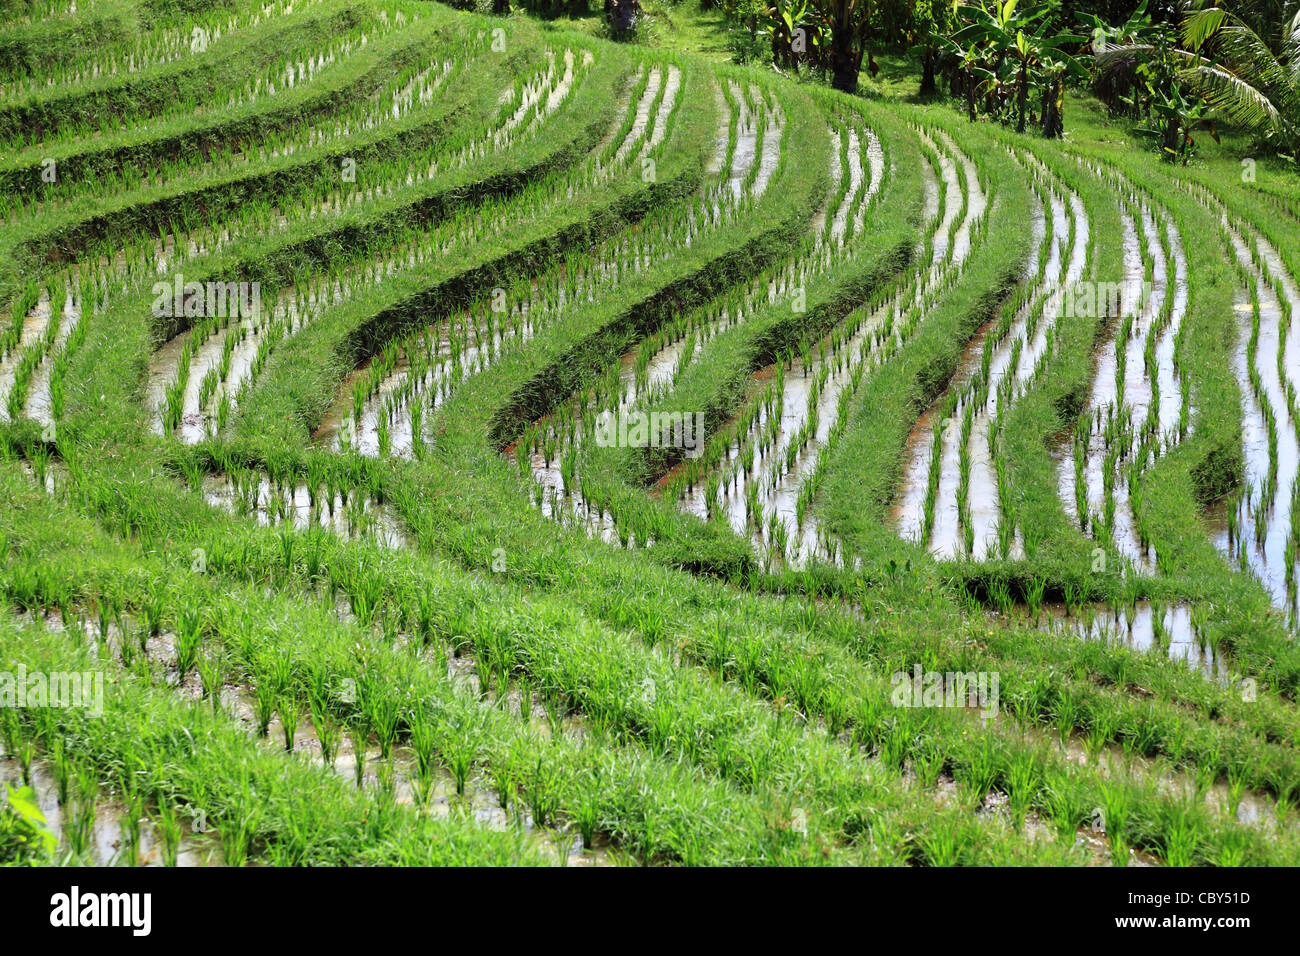 Wet rice field - rice terrace at Bali, Indonesia - Stock Image